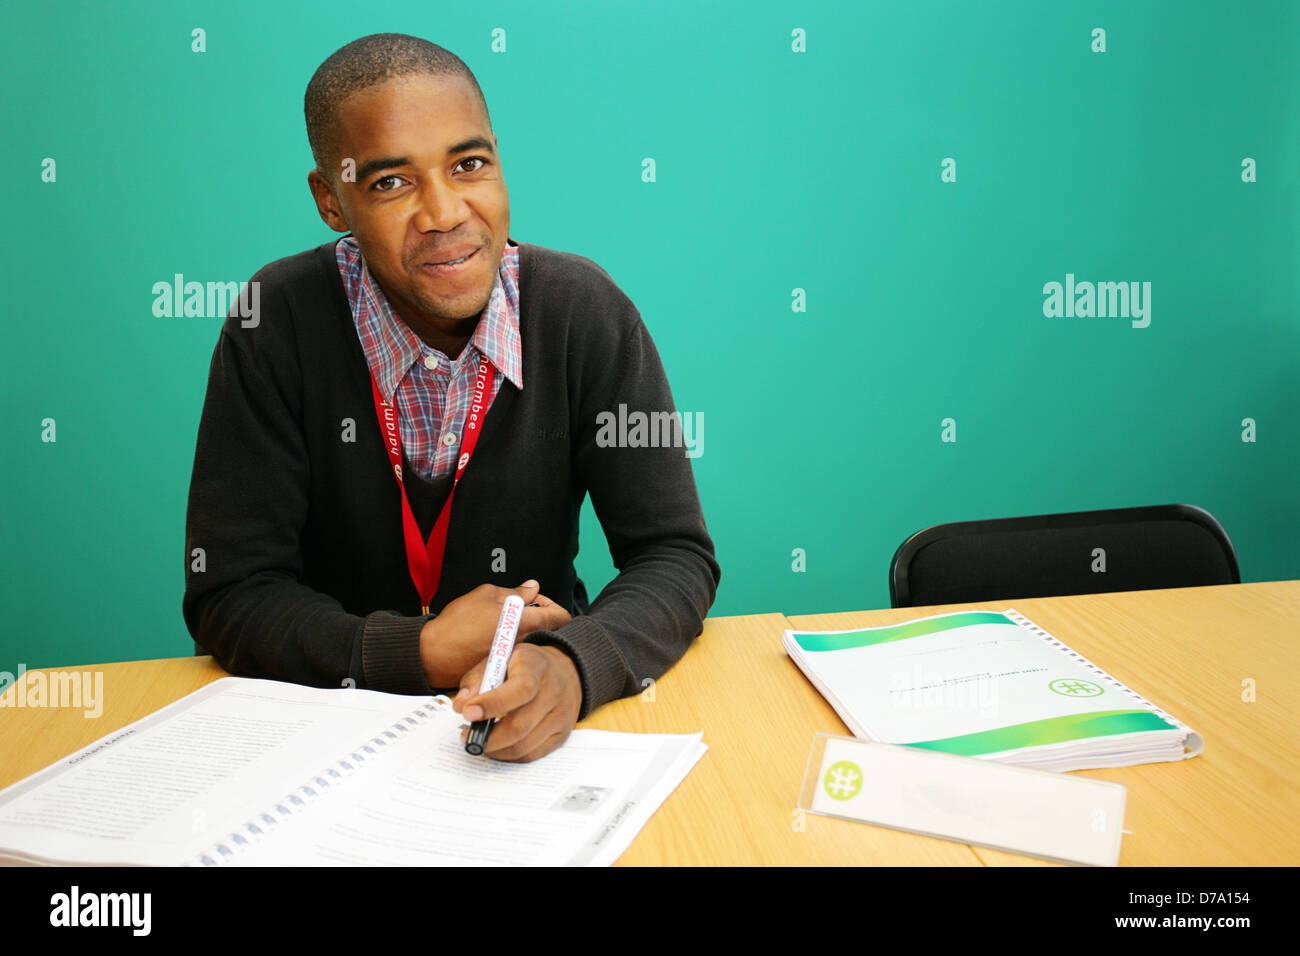 Cape Town based student training to be entry-level worker. Smiling in front of a plain green wall. - Stock Image